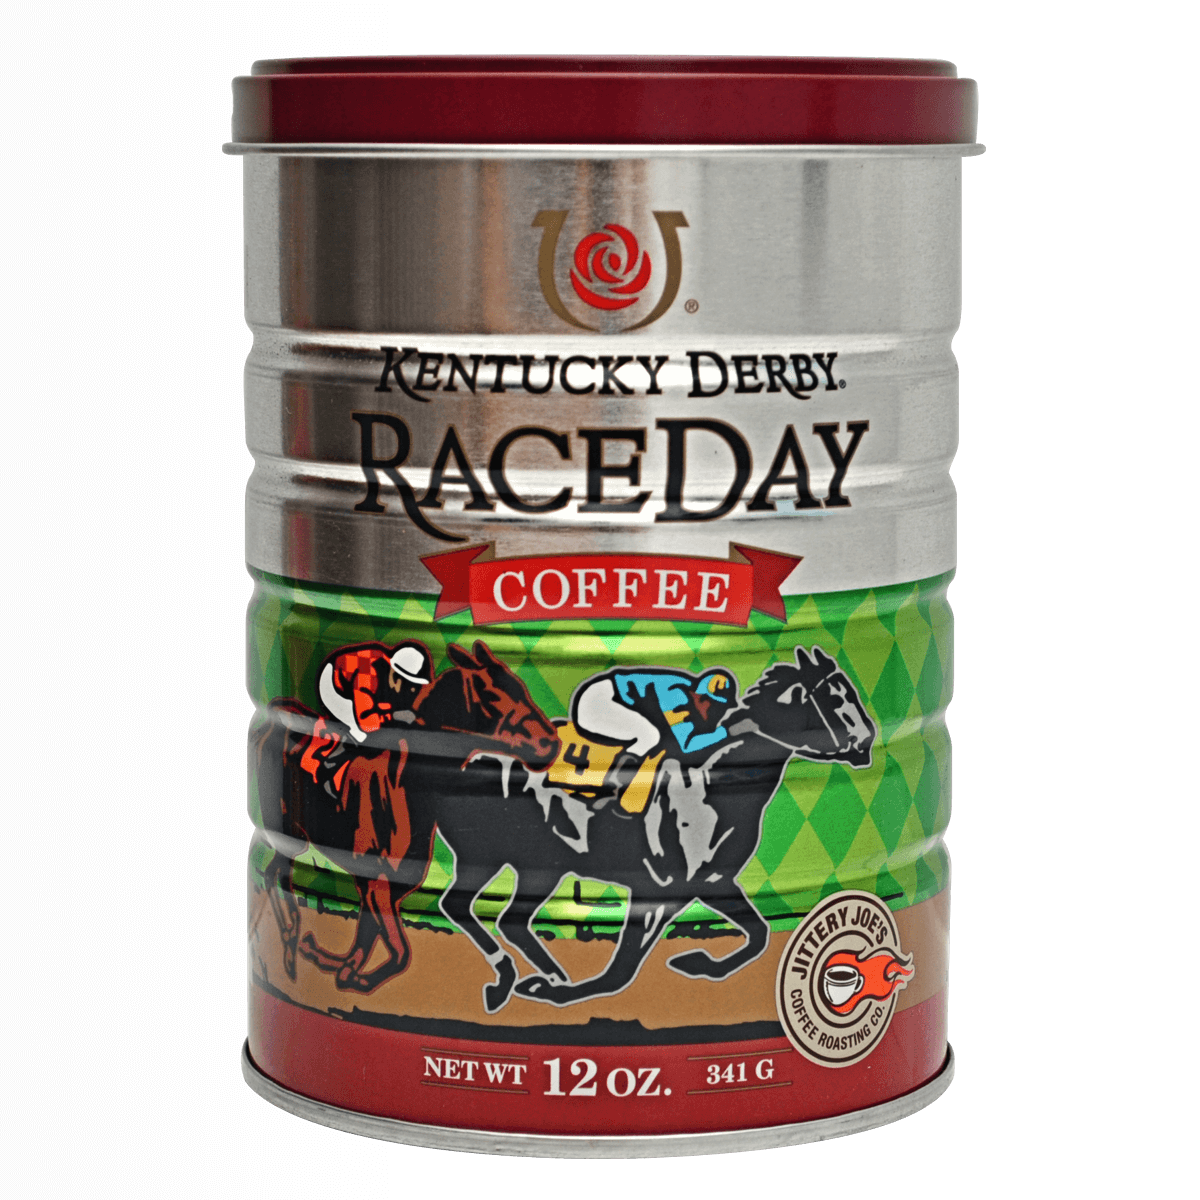 Kentucky Derby® Race Day Coffee